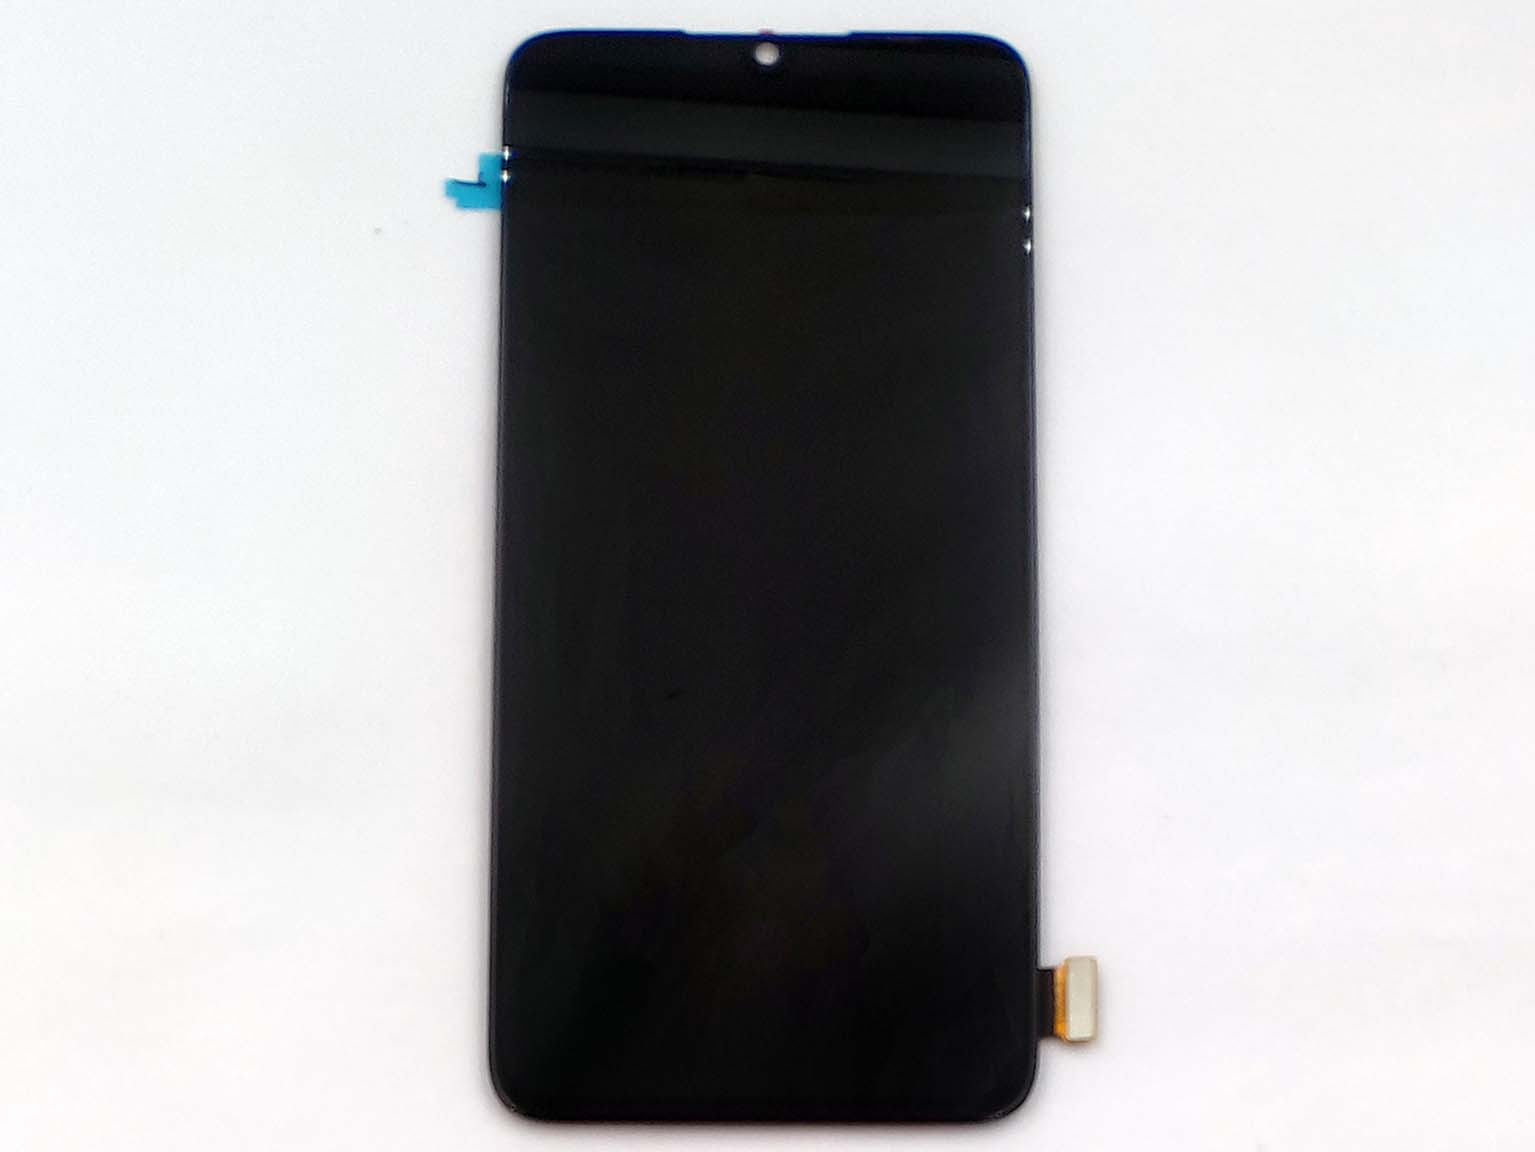 Digitizer Touch Screen for LG Optimus L7 II P710 - Black